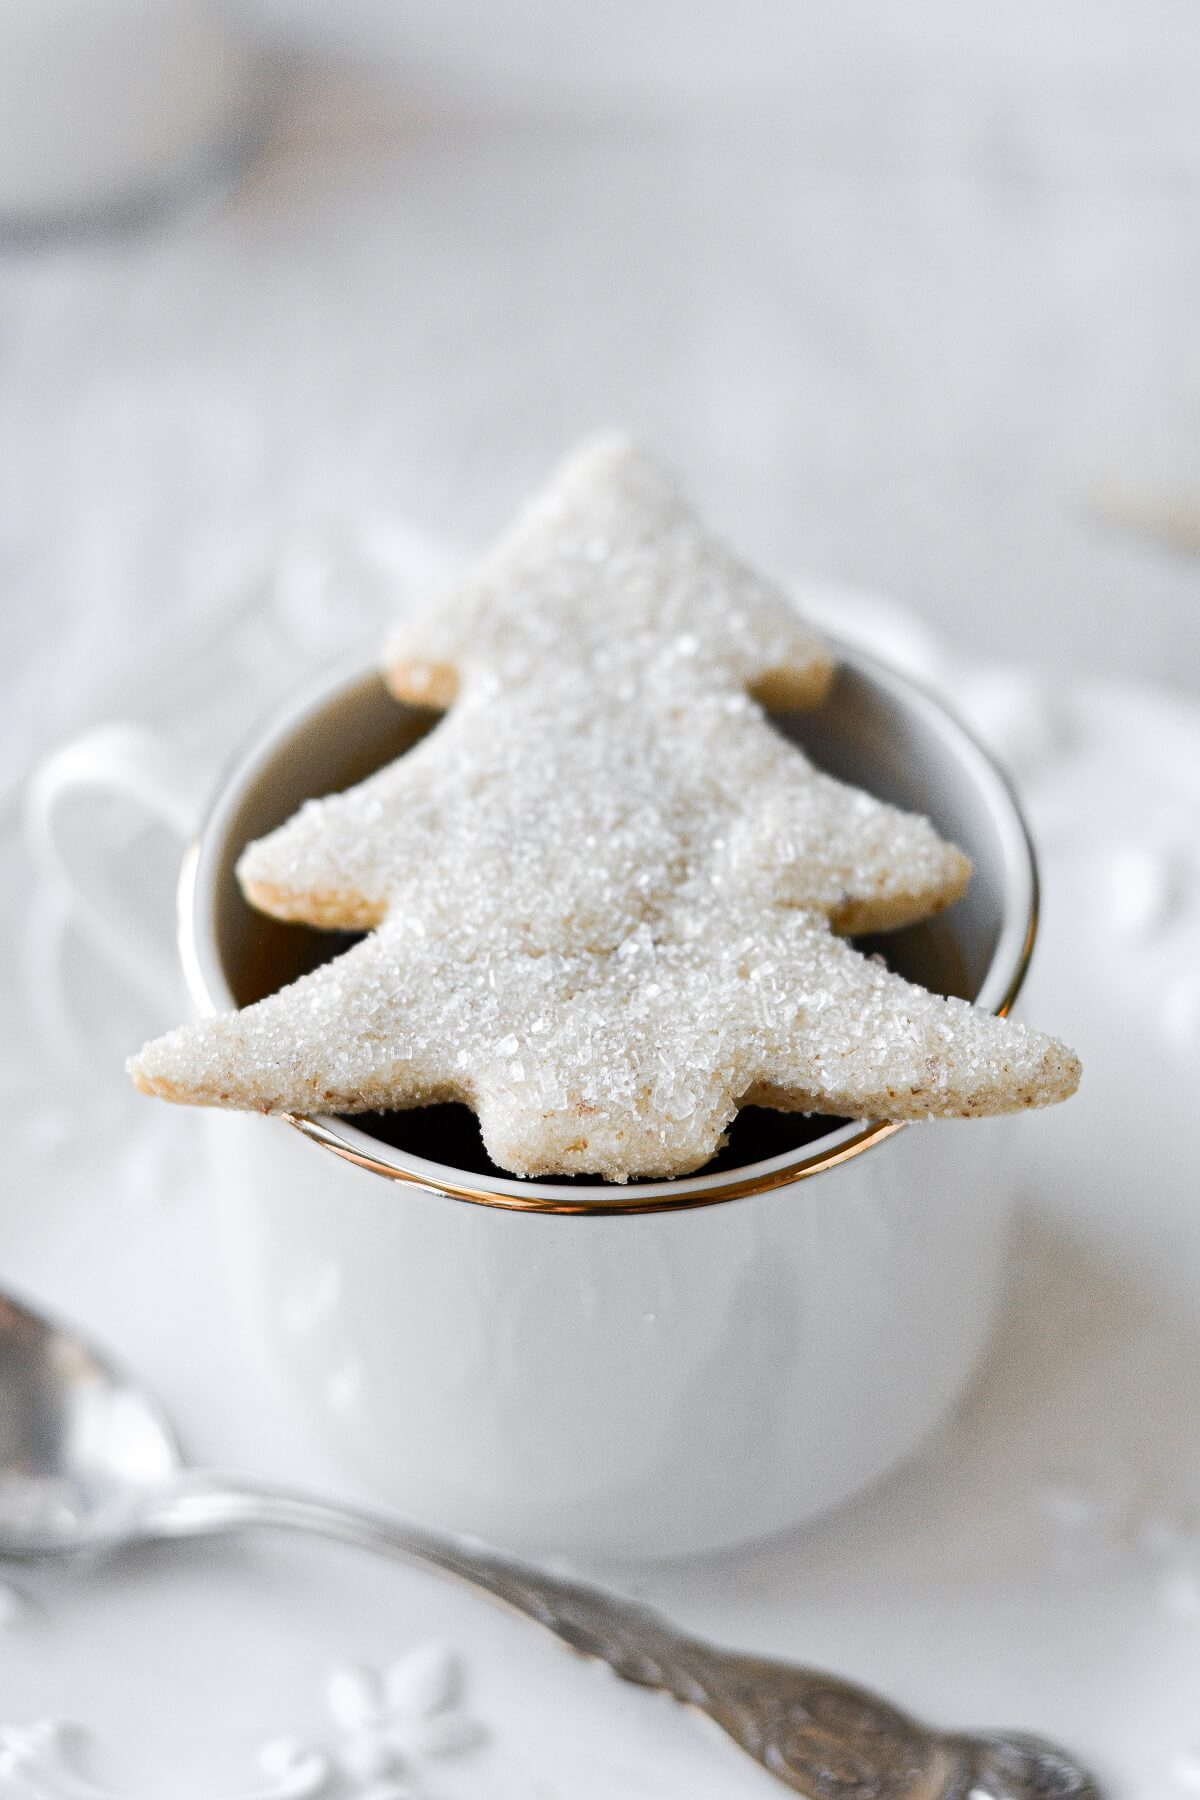 An almond shortbread sugar cookie shaped like a Christmas tree, resting on a cup of coffee.